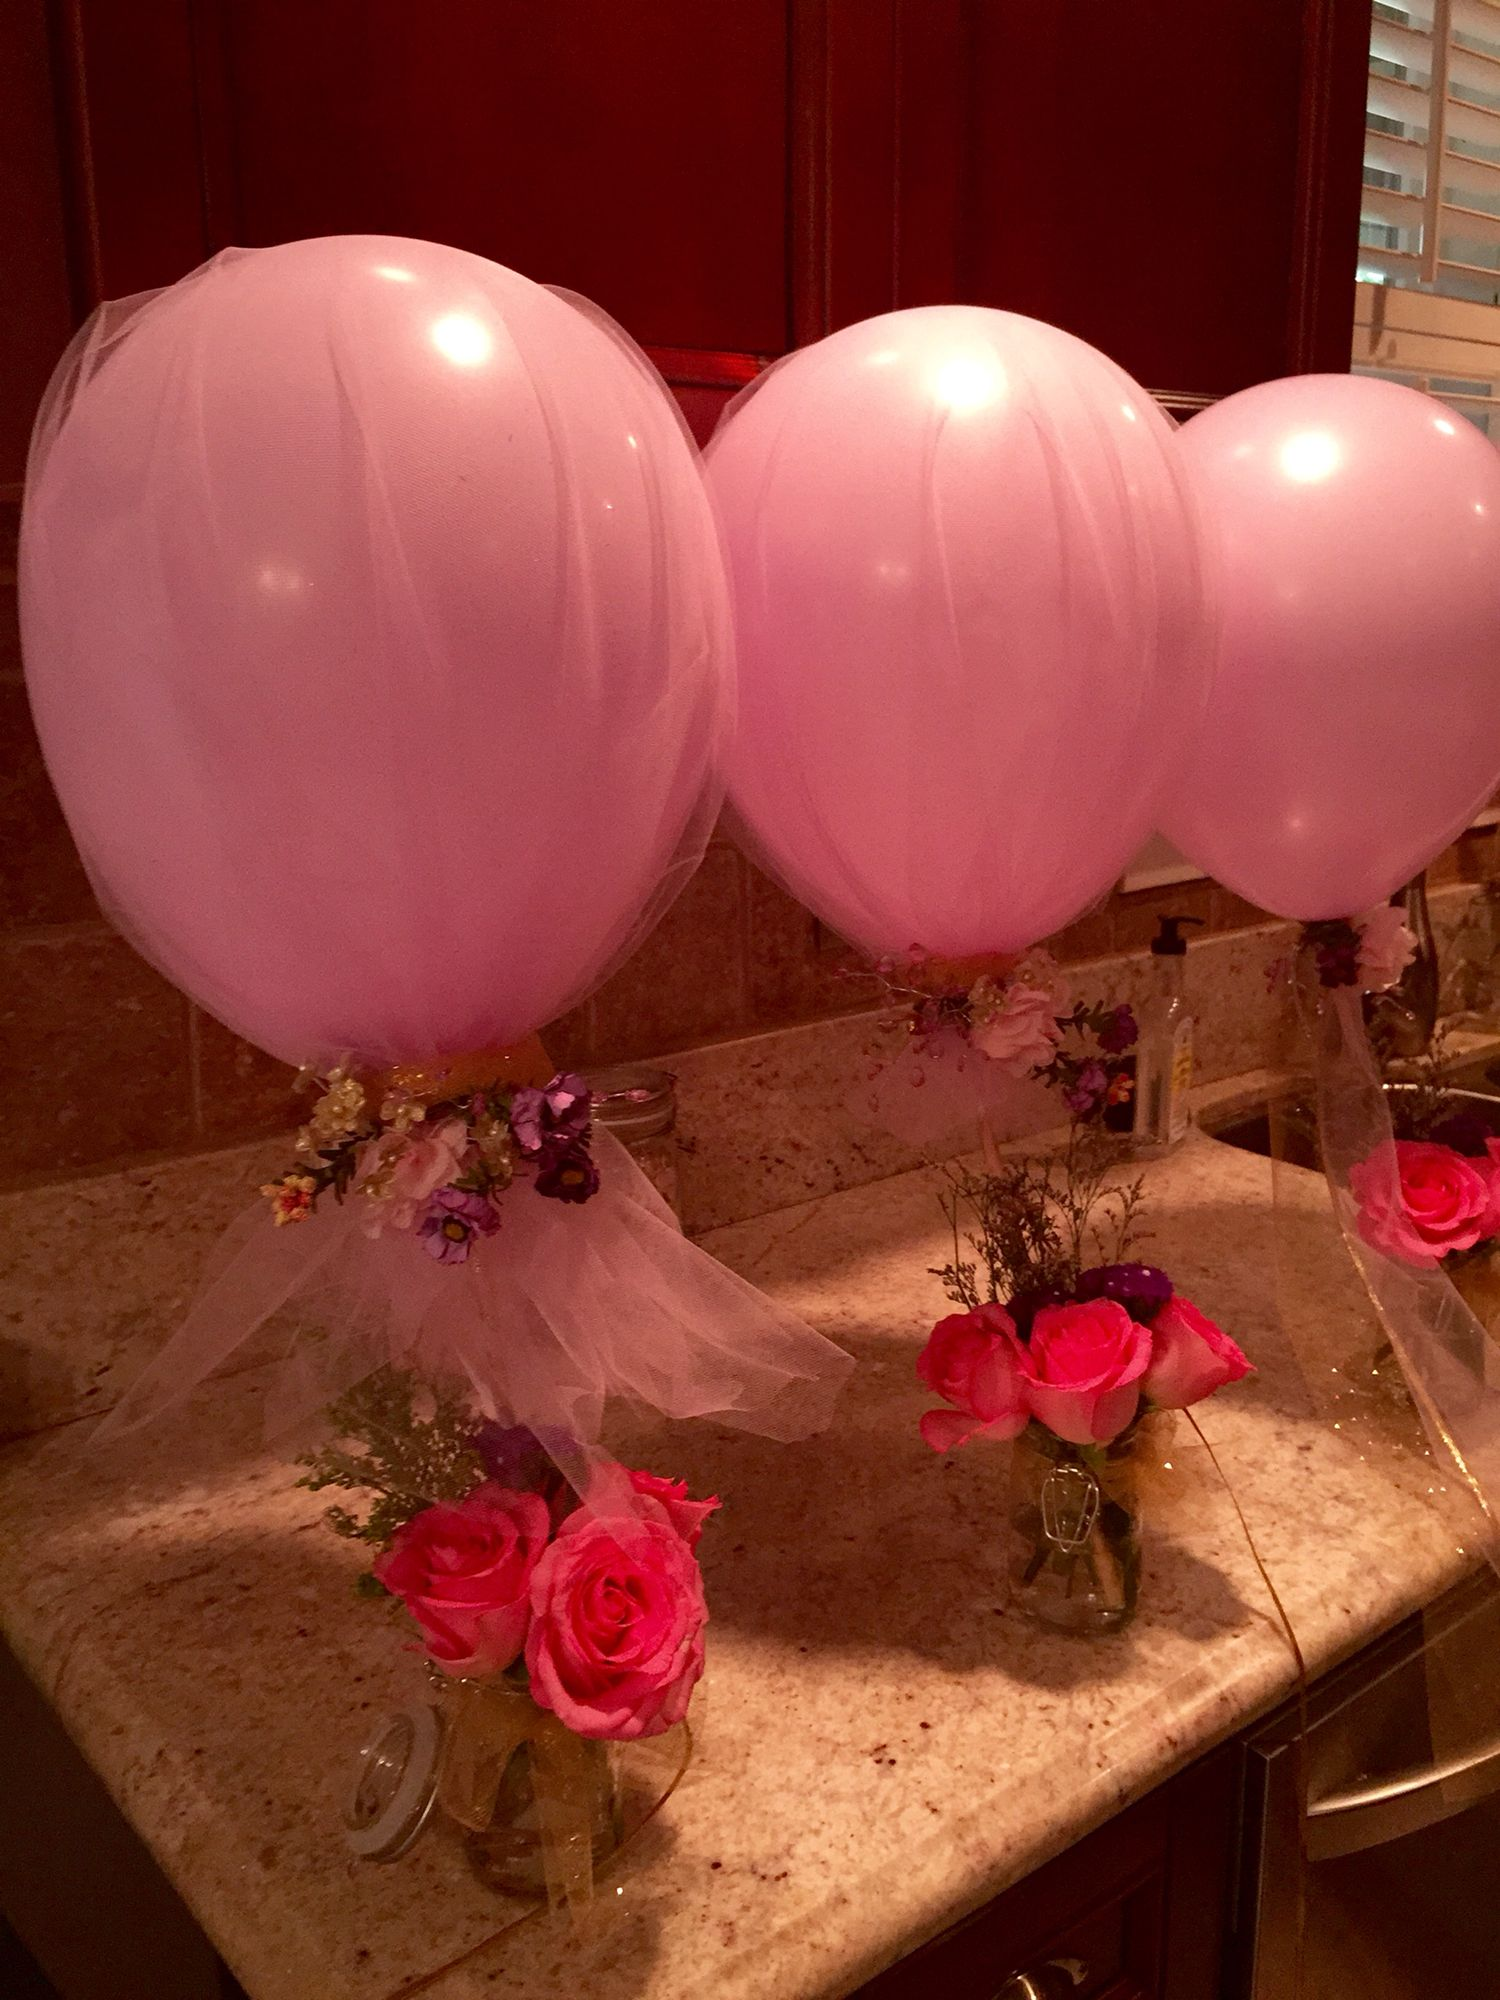 Tulle balloons with floral trims on dowels placed in